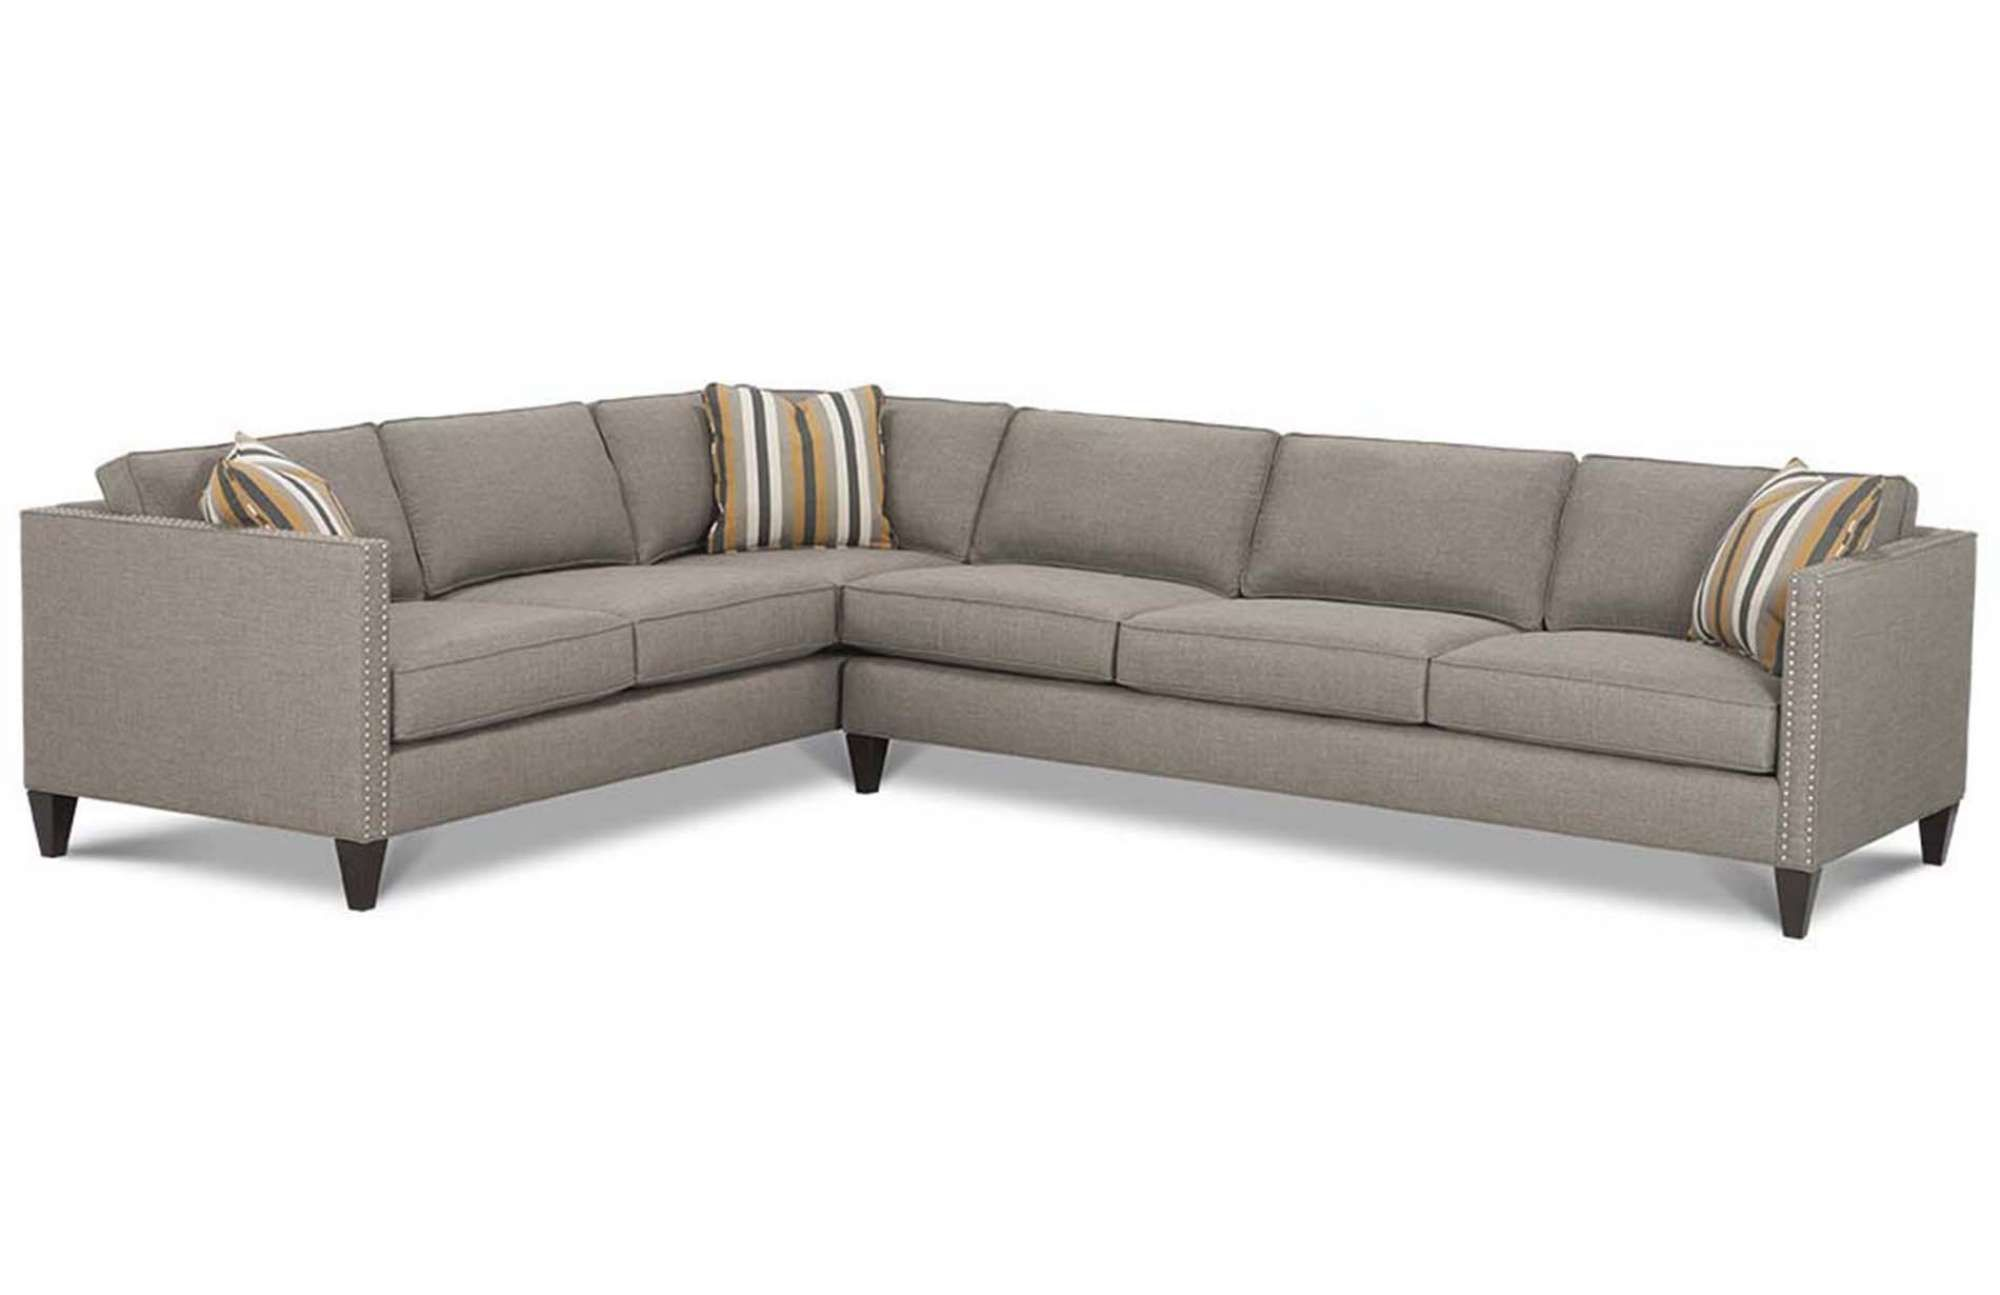 Modern Mix Plain Back Sectional - Rowe Furniture | Sofas I Love | Pinterest | Modern and Furniture ideas  sc 1 st  Pinterest : rowe sectionals - Sectionals, Sofas & Couches